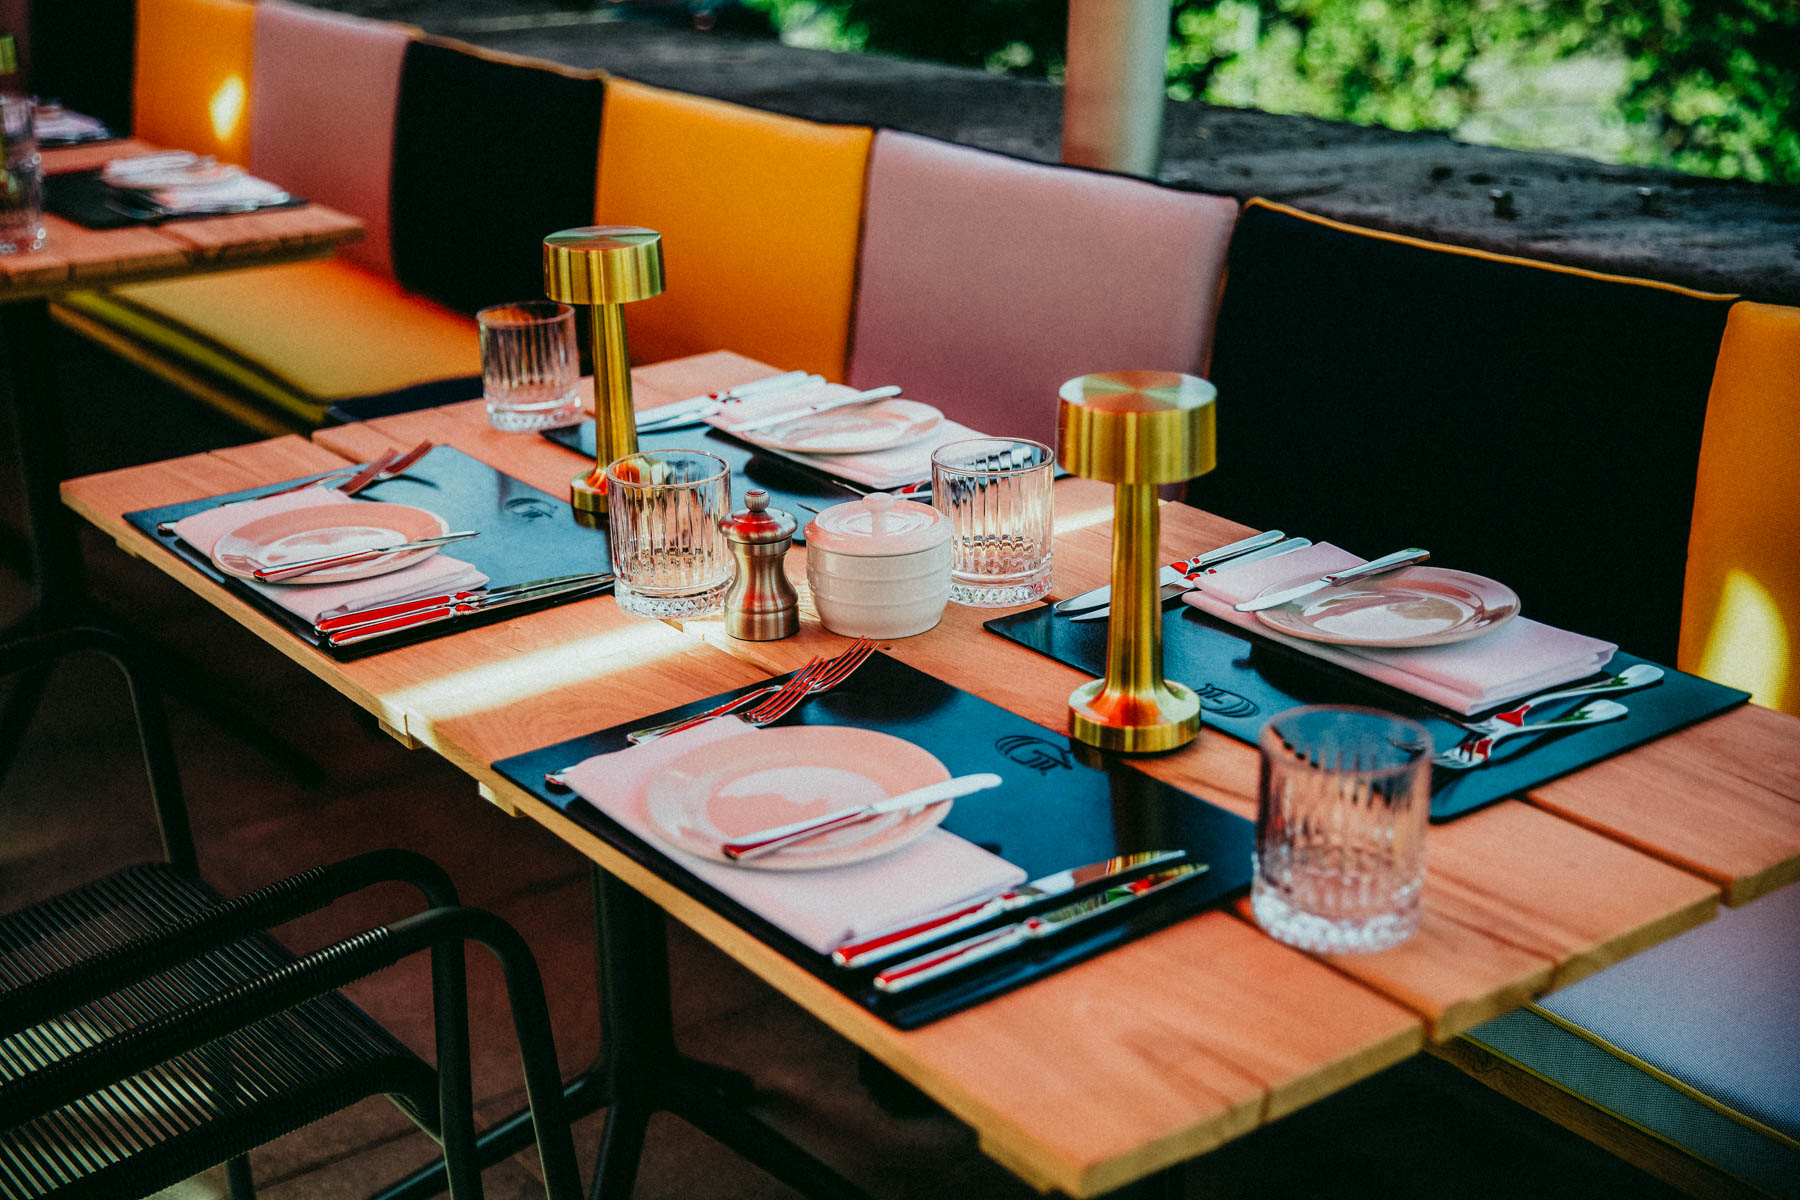 Geheimtipp Muenchen The Grill Gastro 2021 02 – ©The Grill